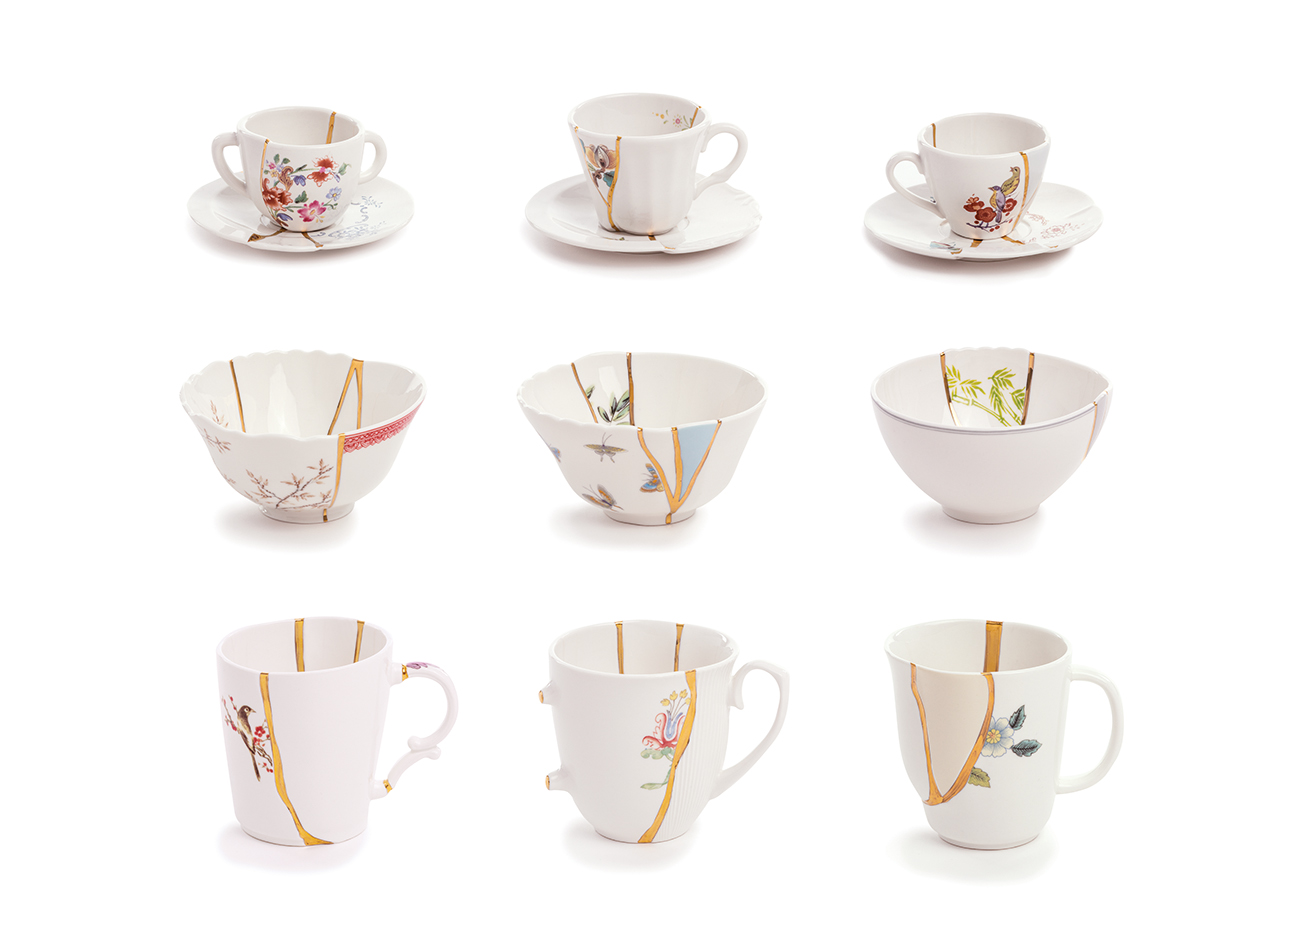 KINTSUGI coffee cups, bowls and mugs - Marcantonio design